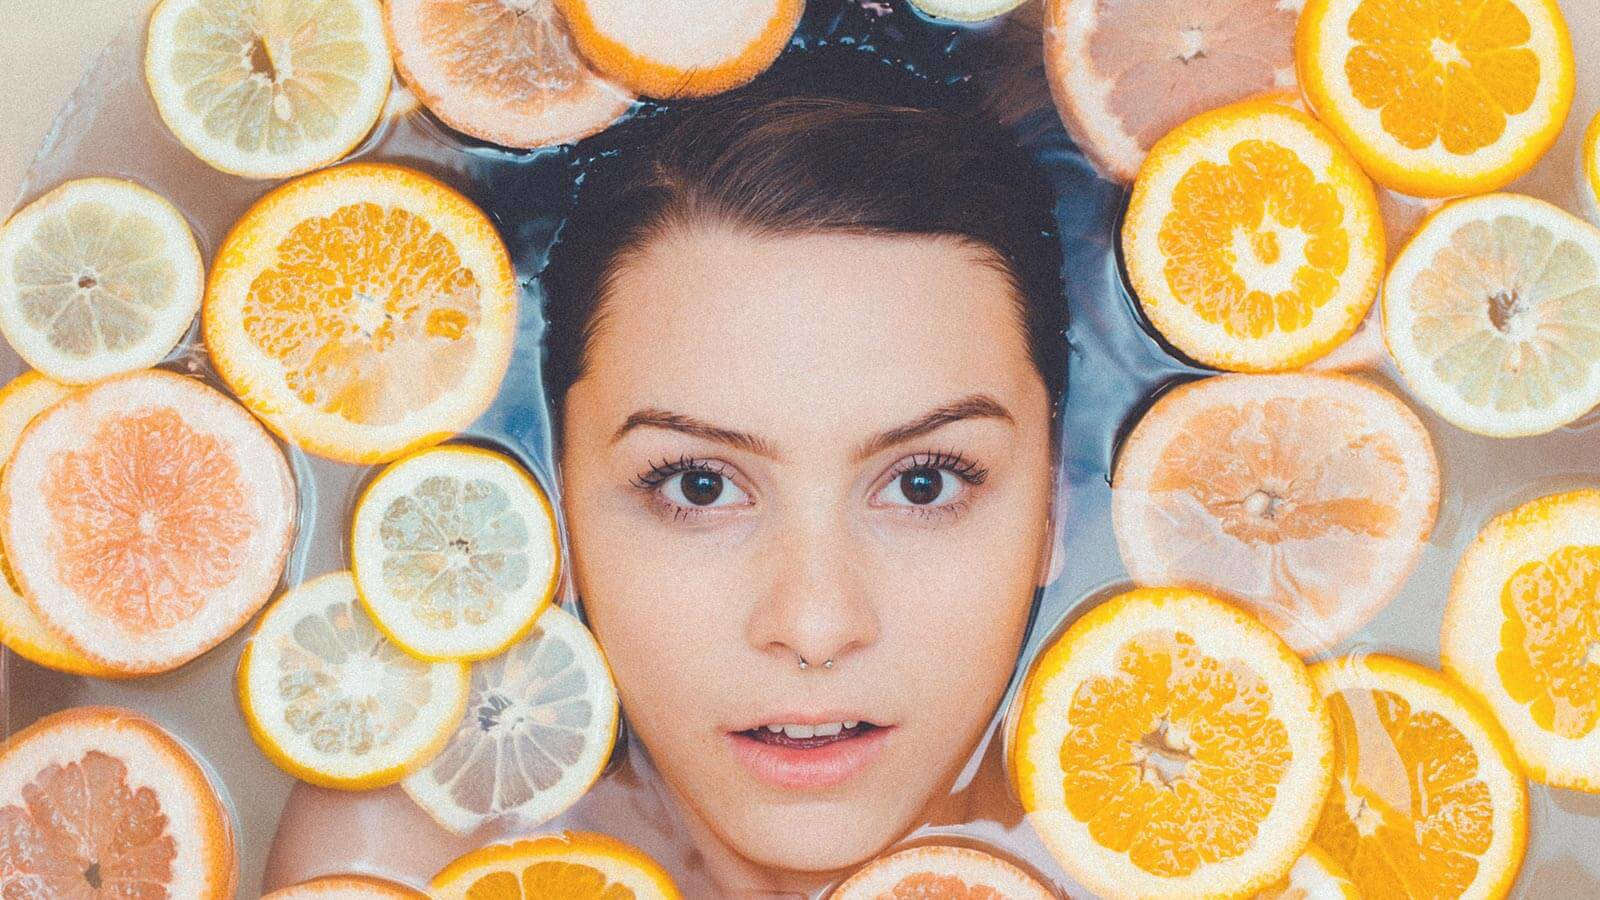 How to Get Rid of Raccoon Eyes Naturally